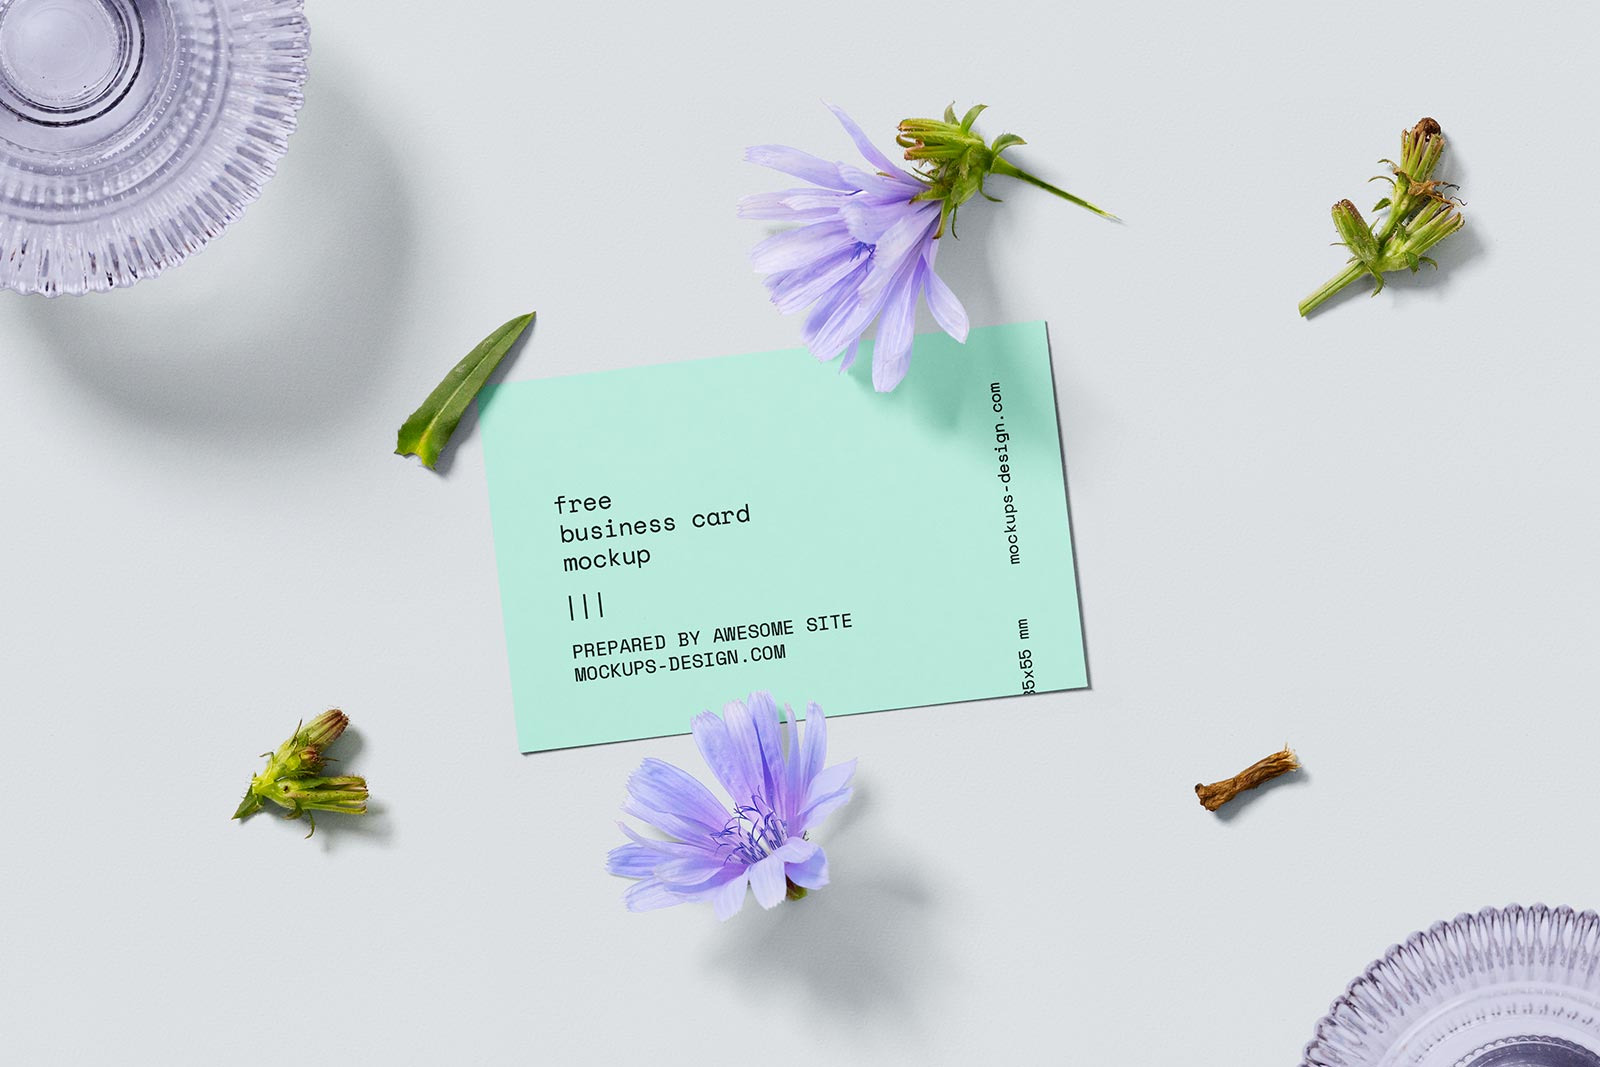 Free Business Card With Flower Mockup Set